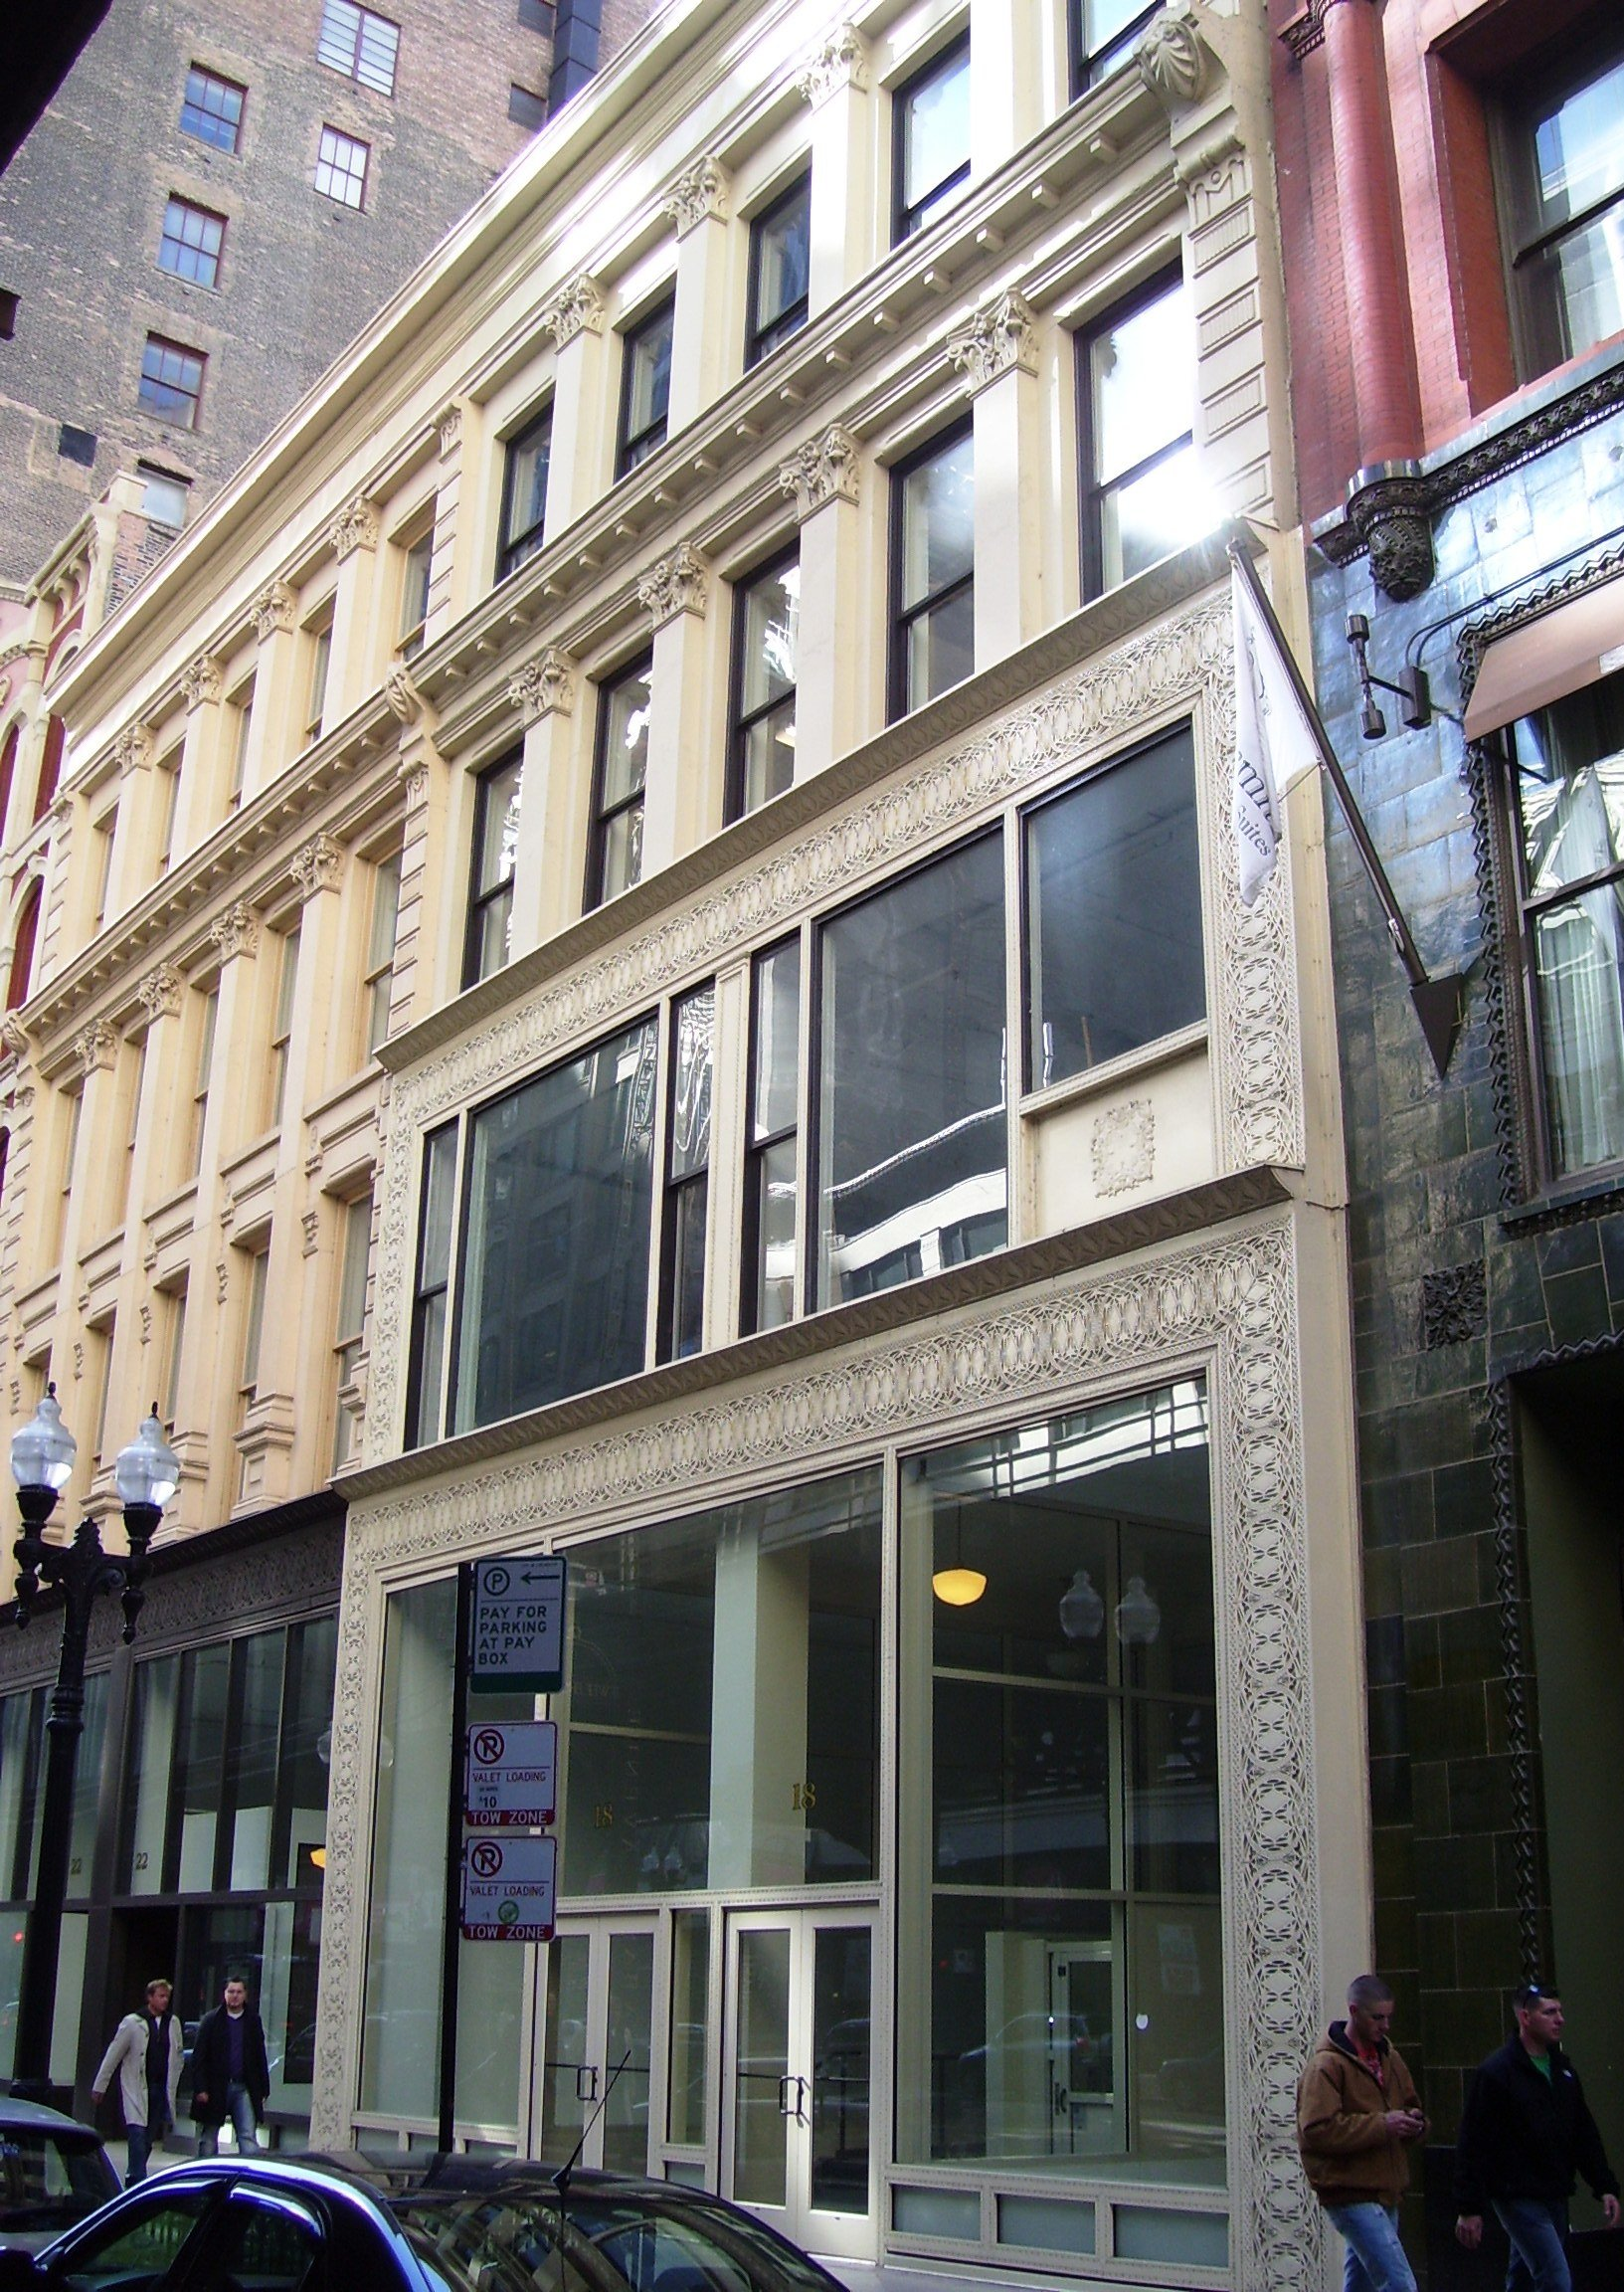 Lower stories of the Barker and Haskell Buildings.